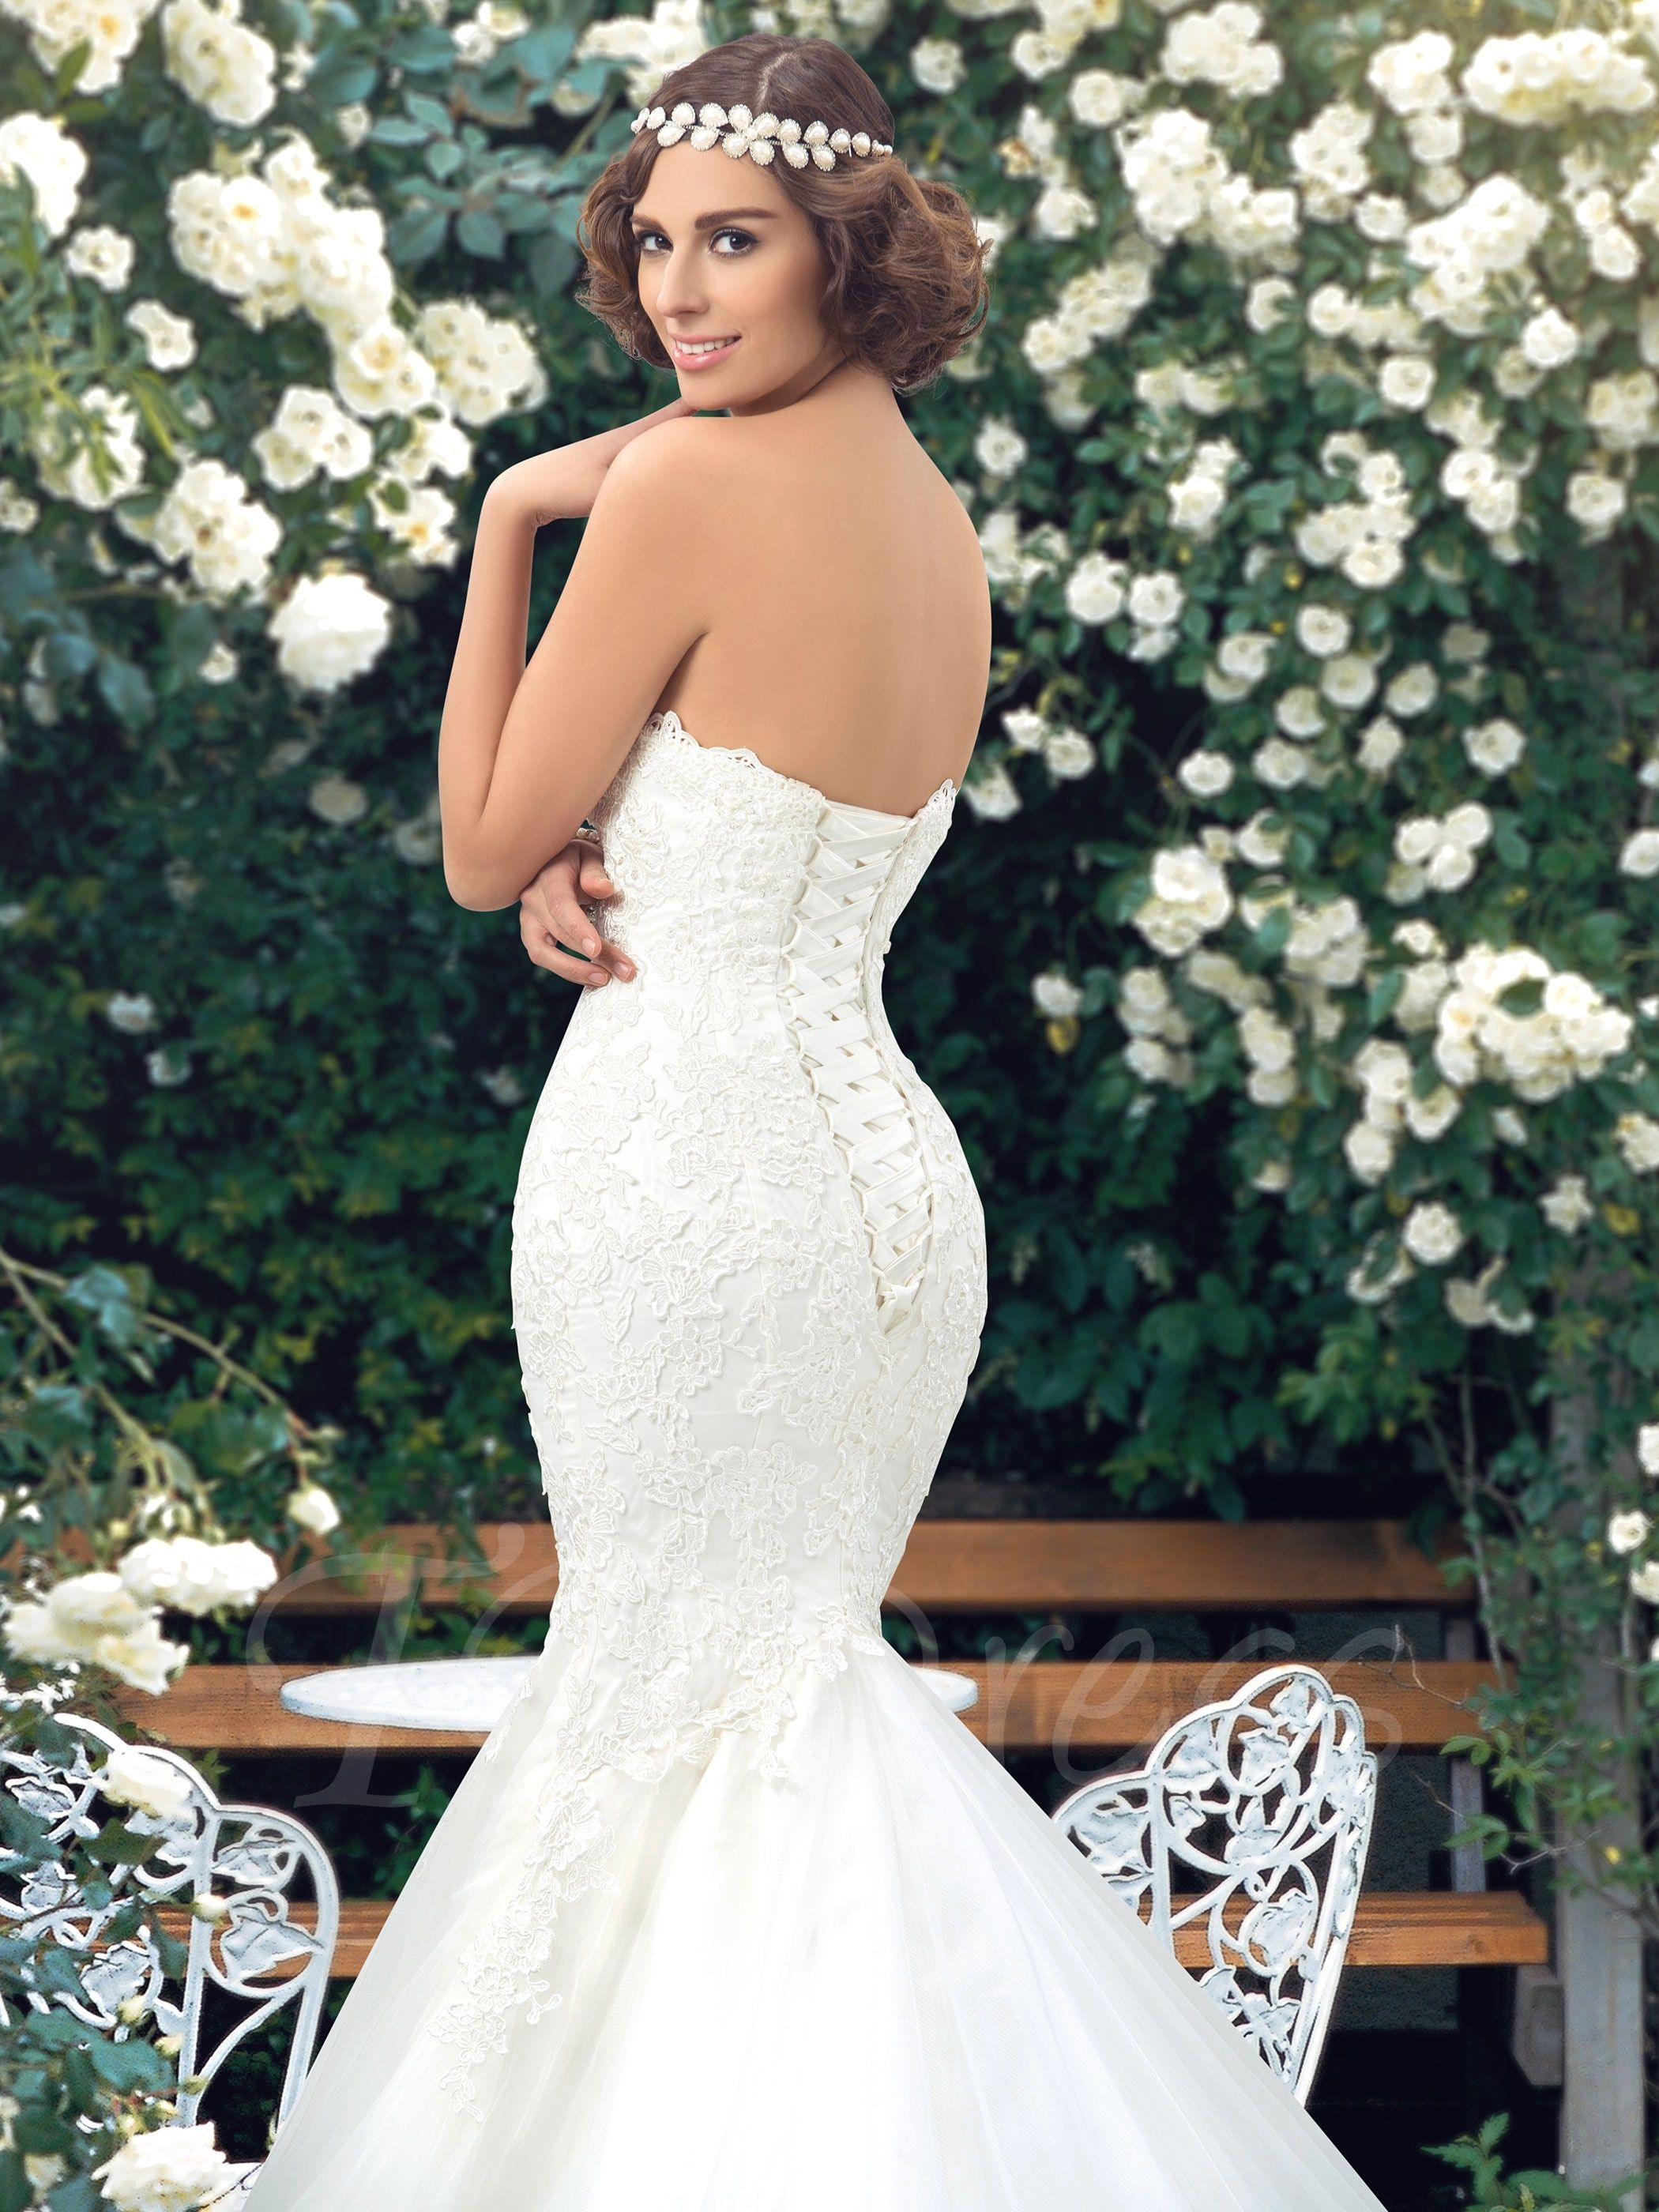 Lace sweetheart wedding dress  Sweetheart Lace Appliques LaceUp Trumpet Wedding Dress with Crystal